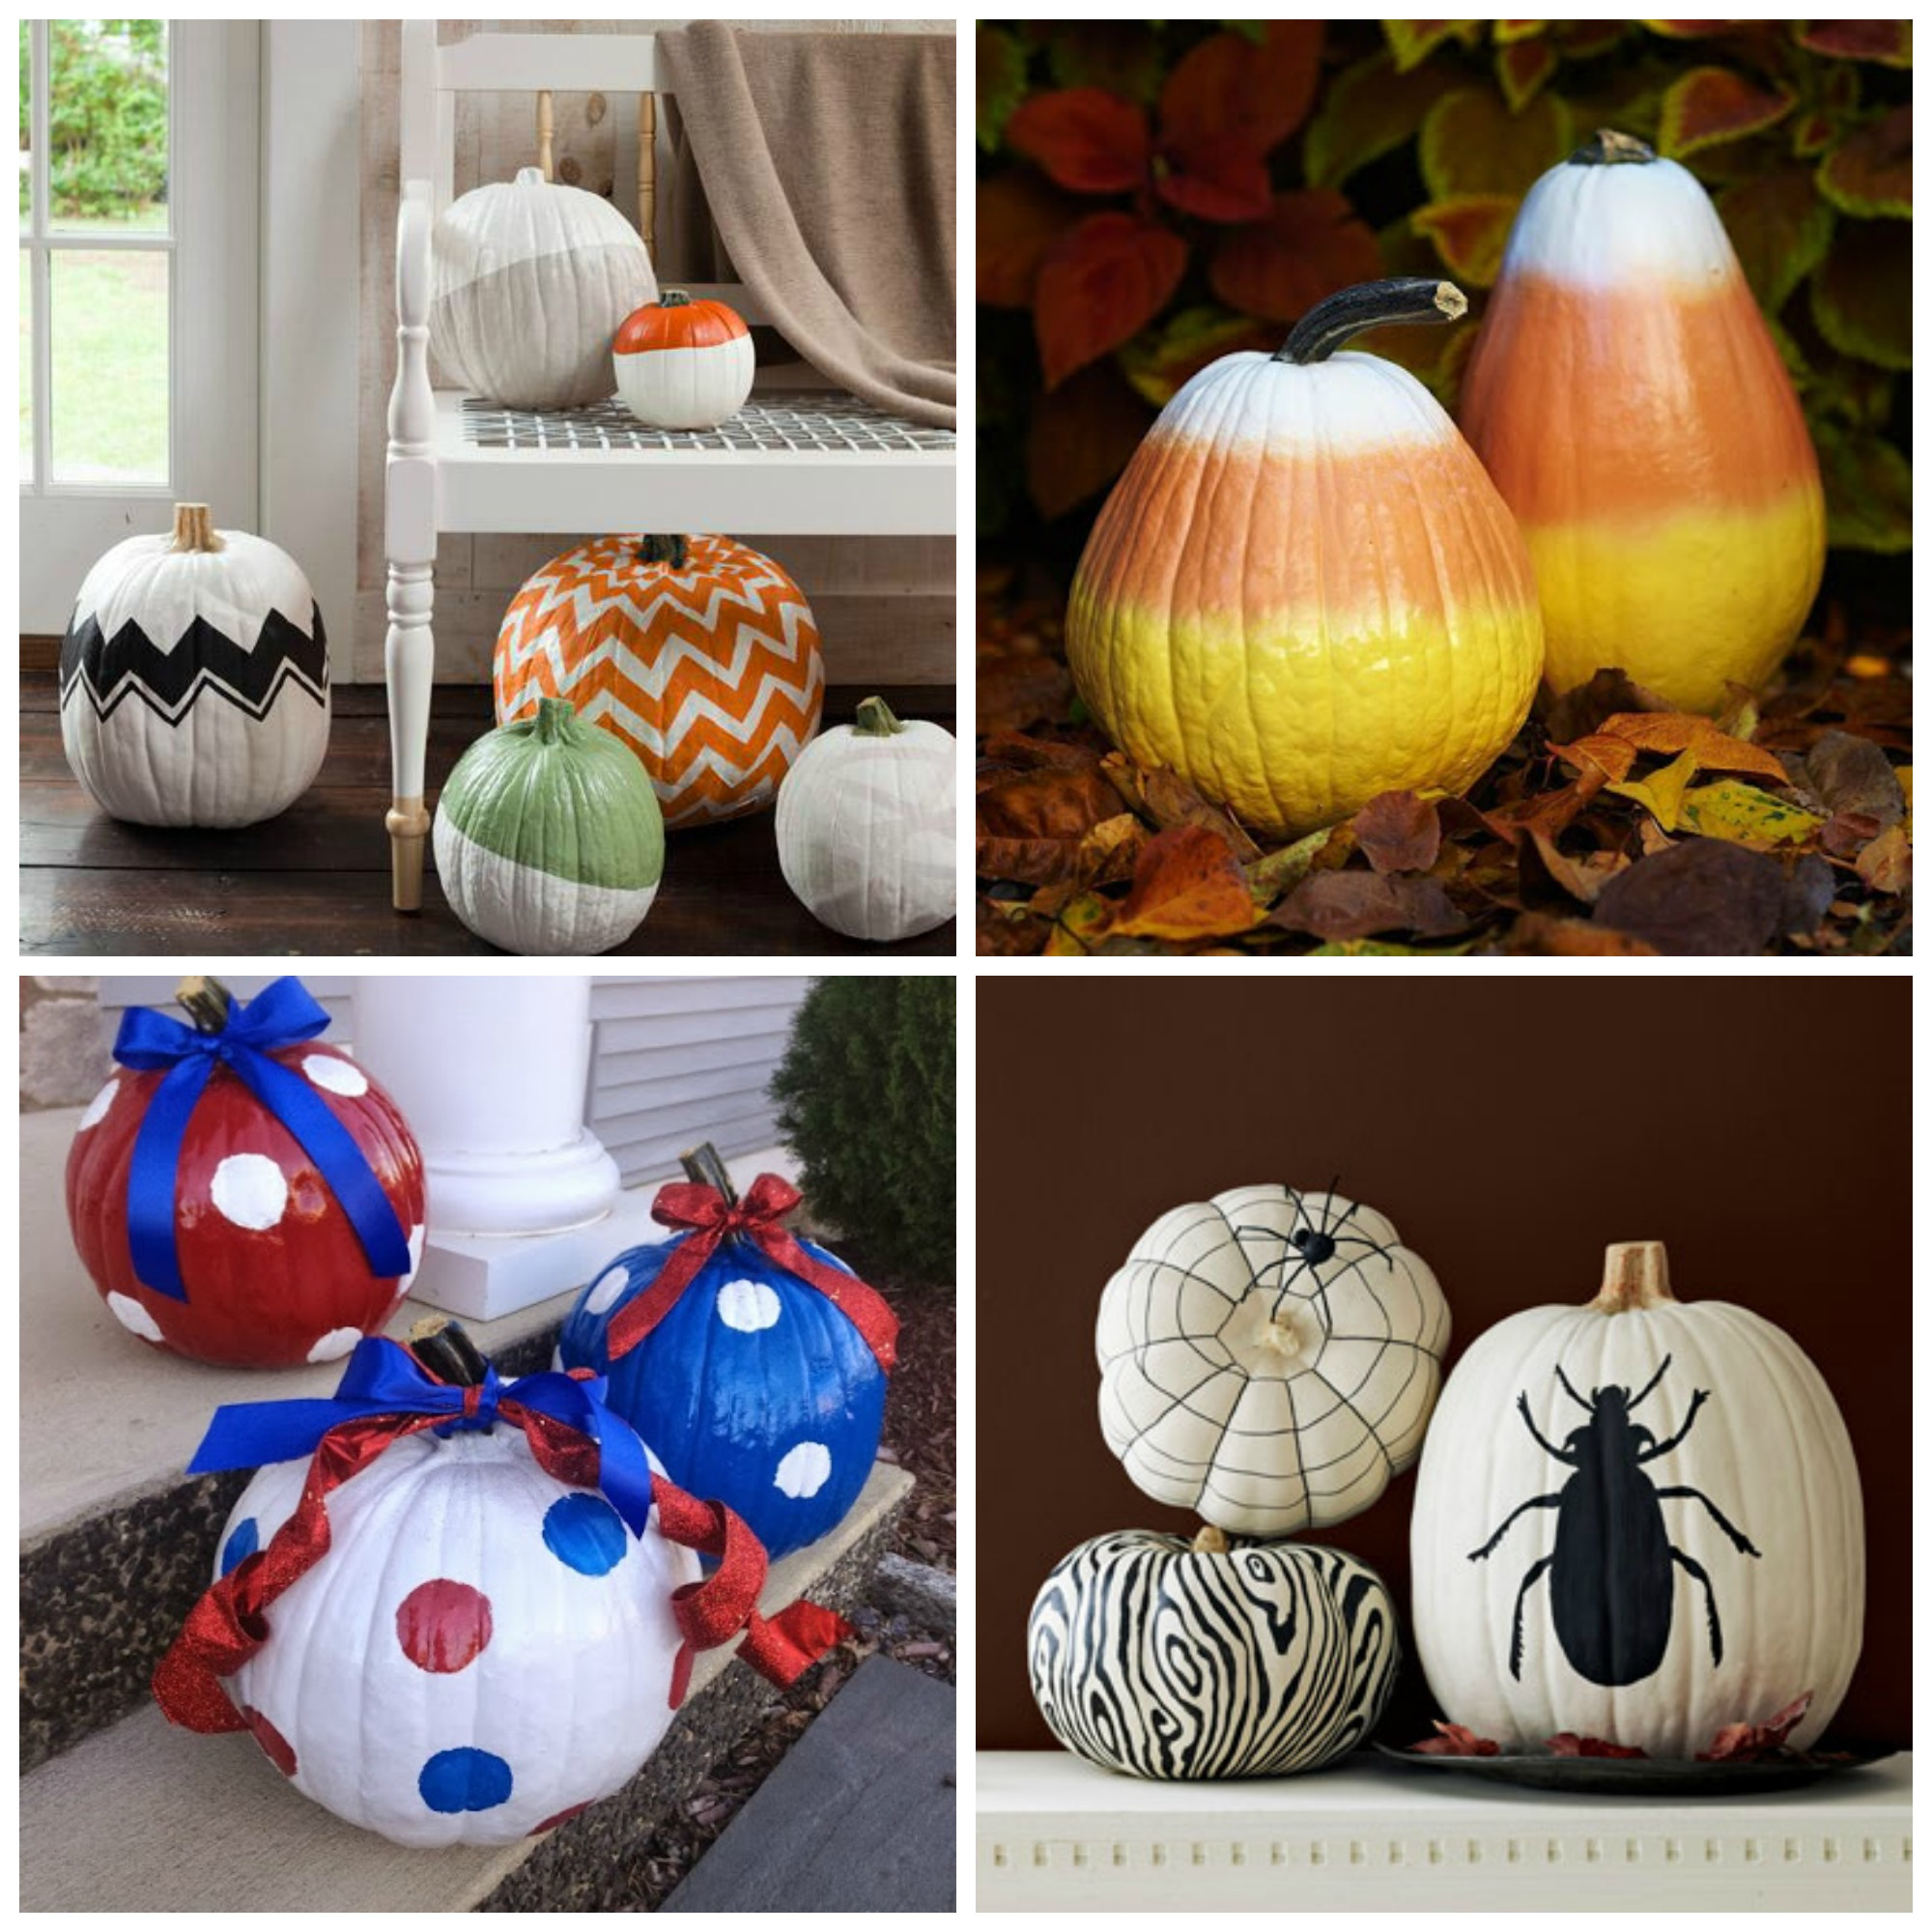 Painted Pumpkin Decorating Ideas & Pumpkin Decorating Ideas and My Curated Pumpkin Roundup - H20Bungalow